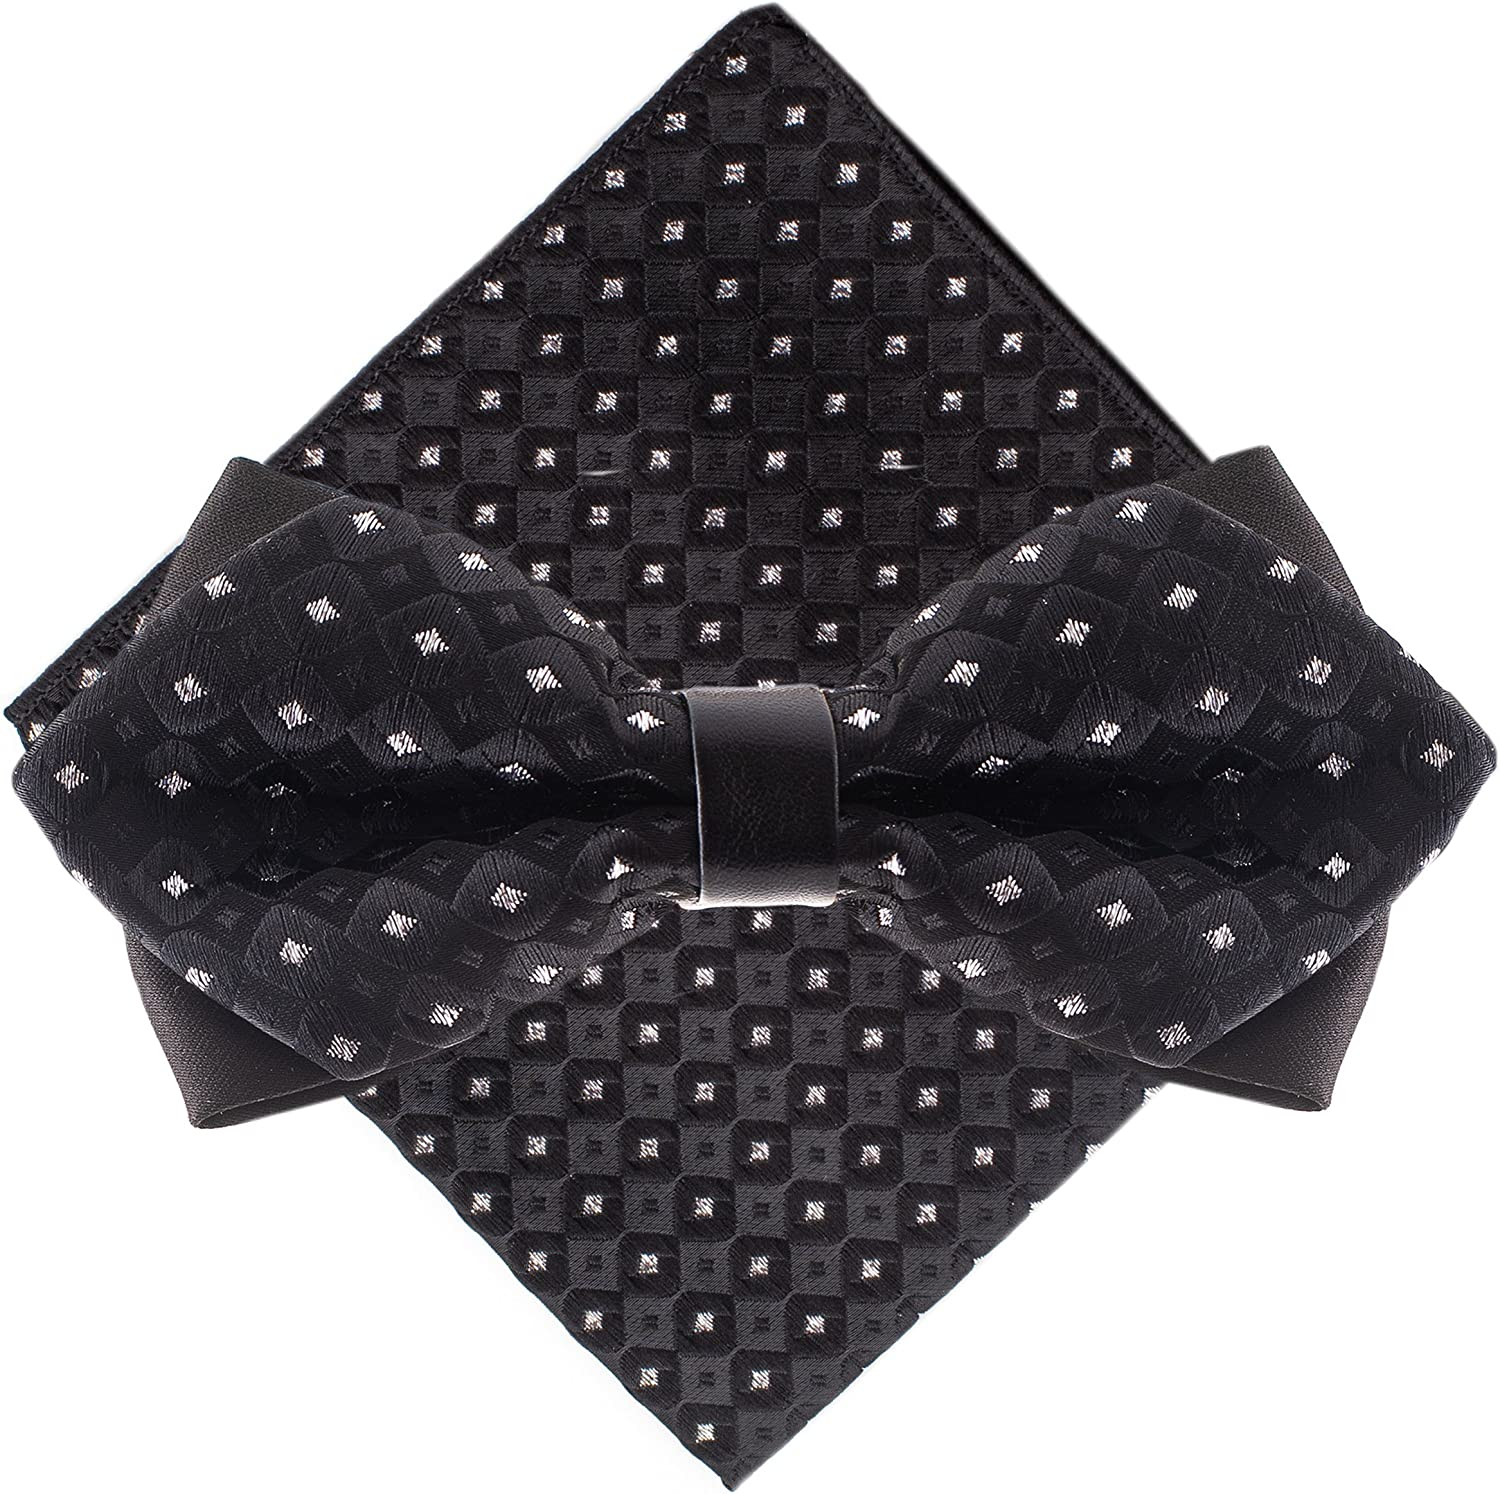 Bow Tie and Pocket Square - Diamond Tip Bow Ties for Men - Many Colors to Choose From